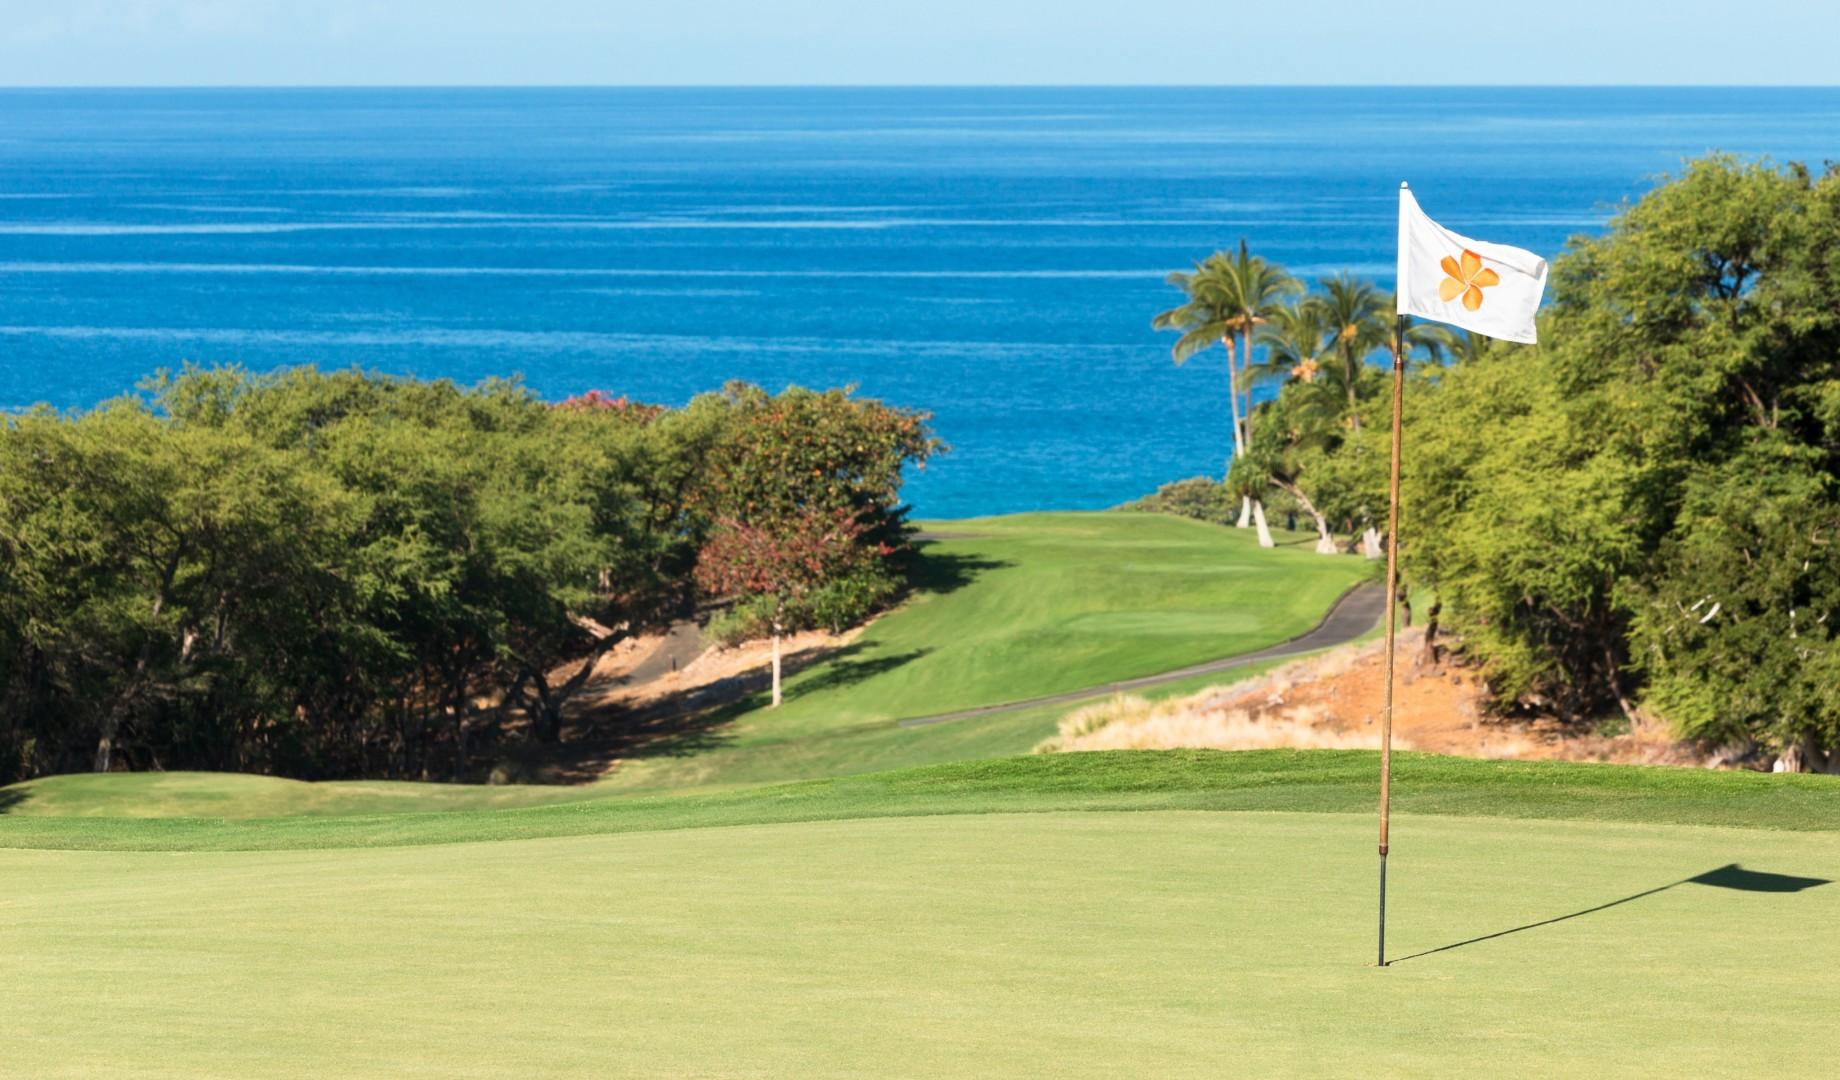 Don't let the beauty of the ocean distract you when putting on the green!